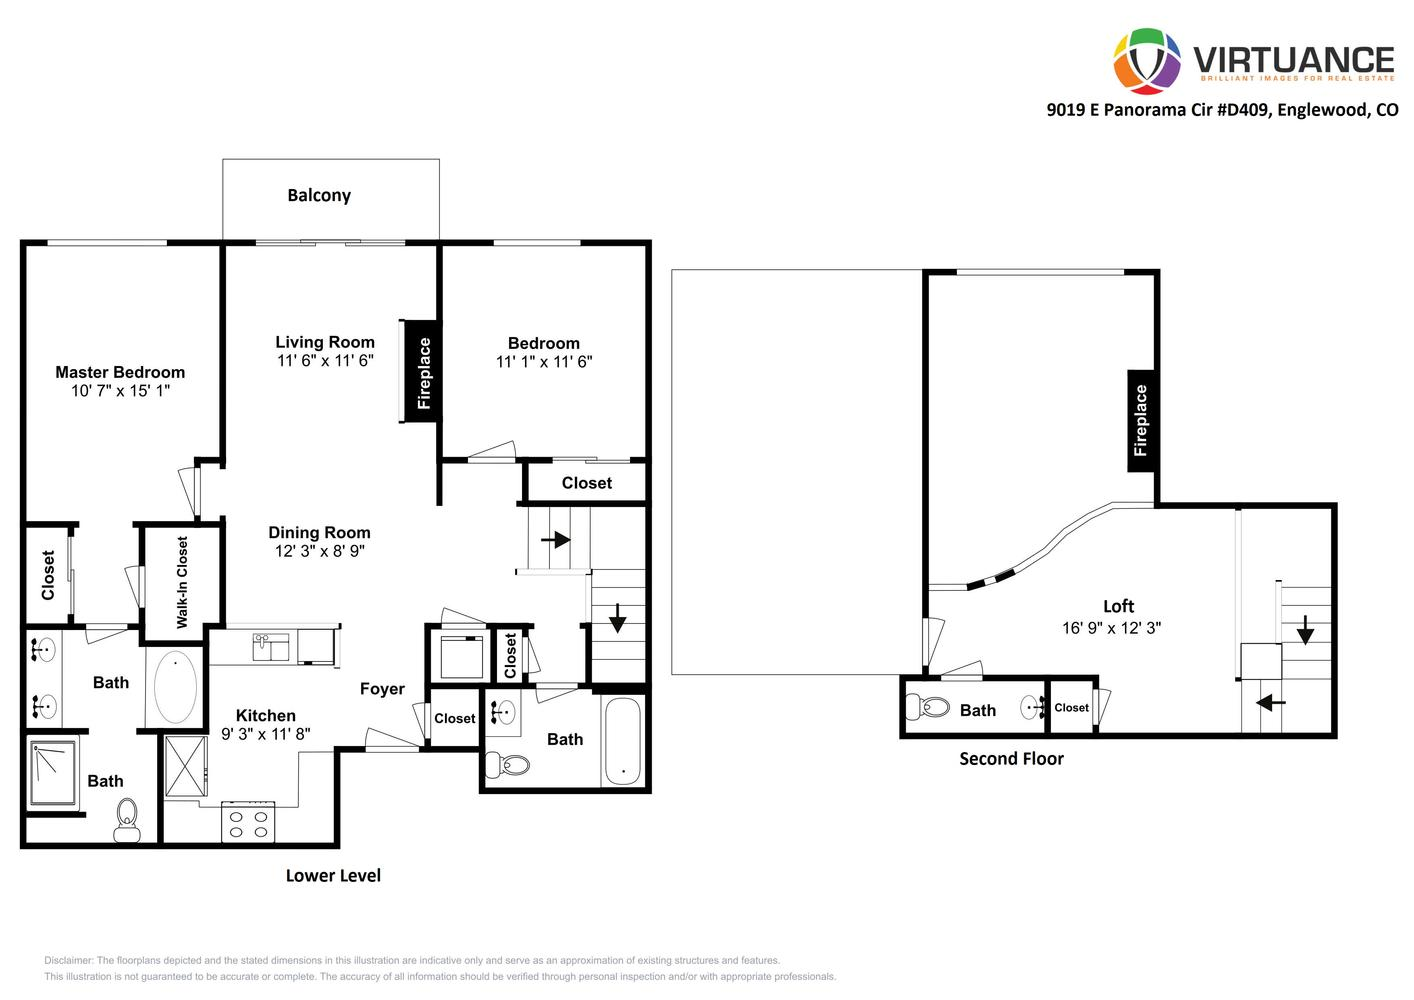 9019 E Panorama Cir D409-large-027-028-Floorplan-1414x1000-72dpi